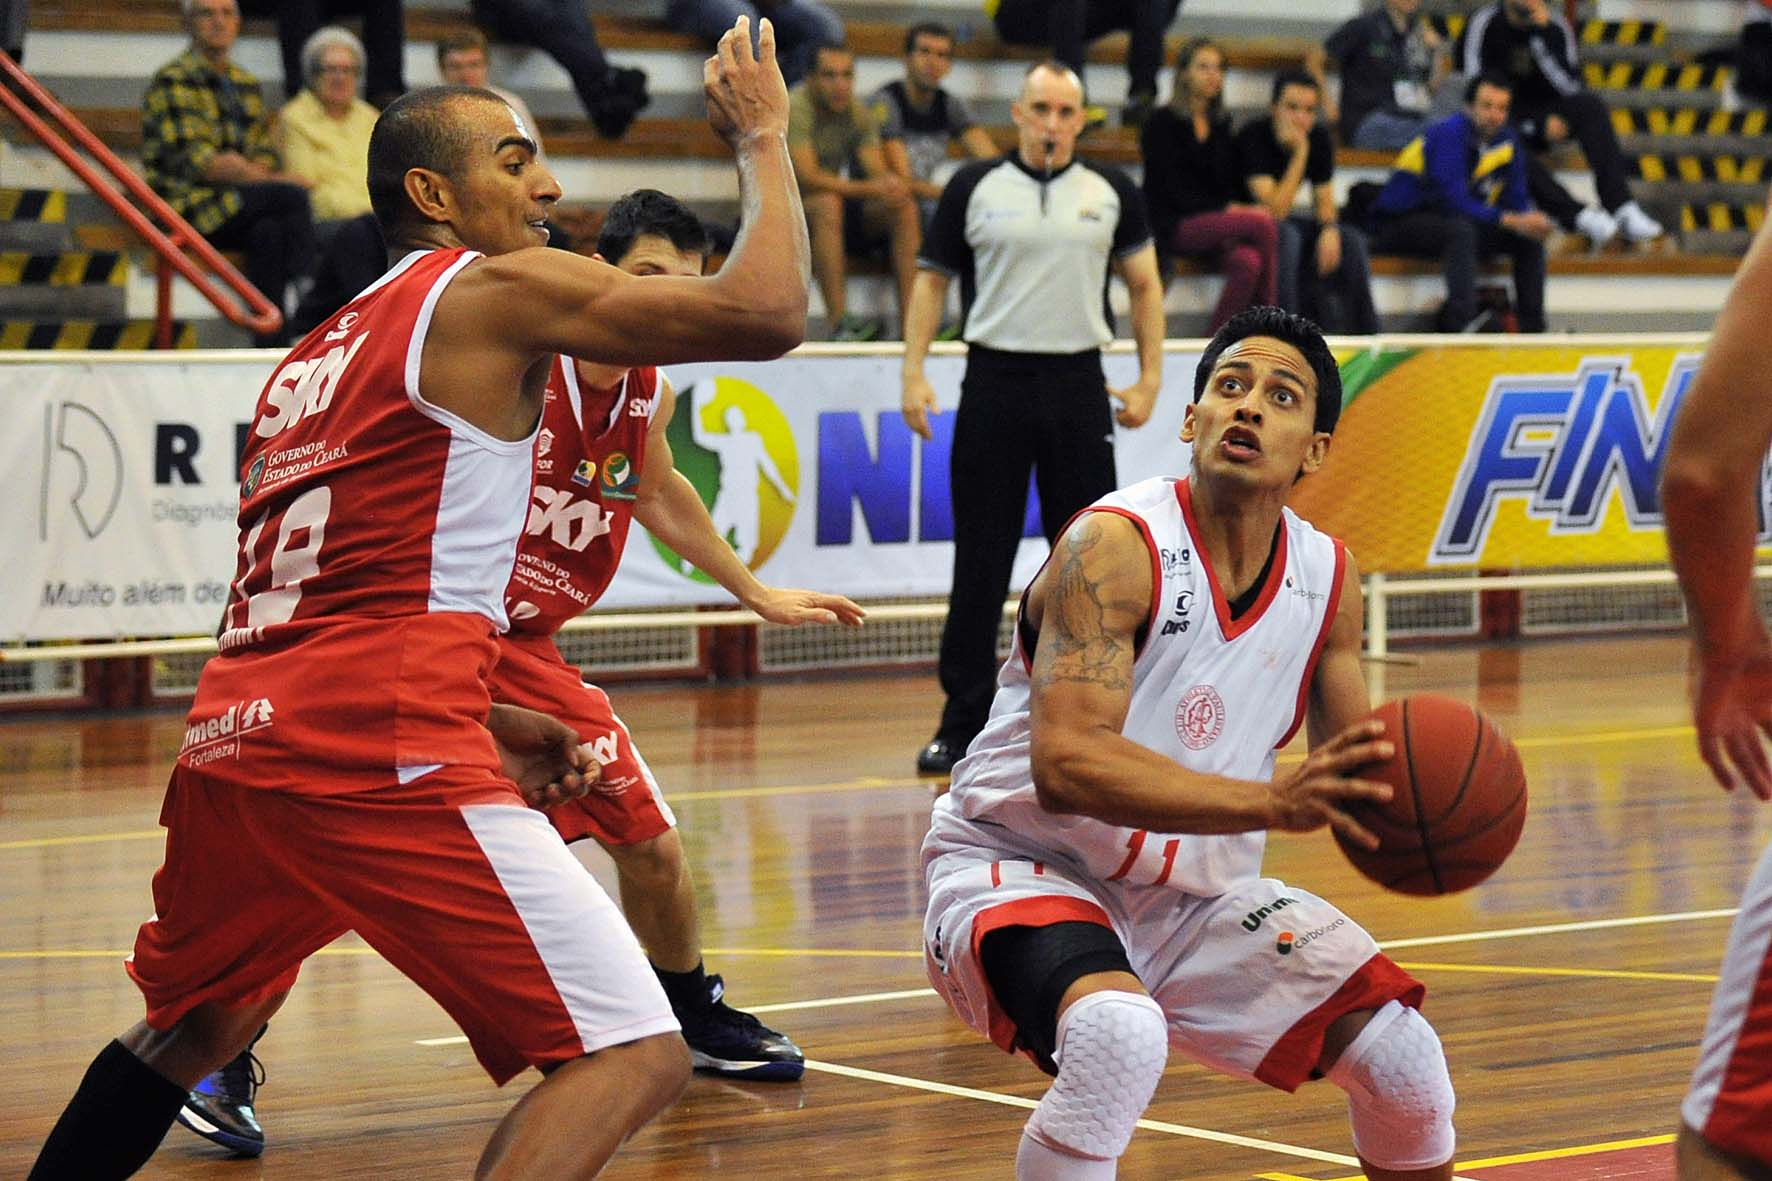 Muñoz, do Paulistano, e Jimmy, do Basquete Cearense